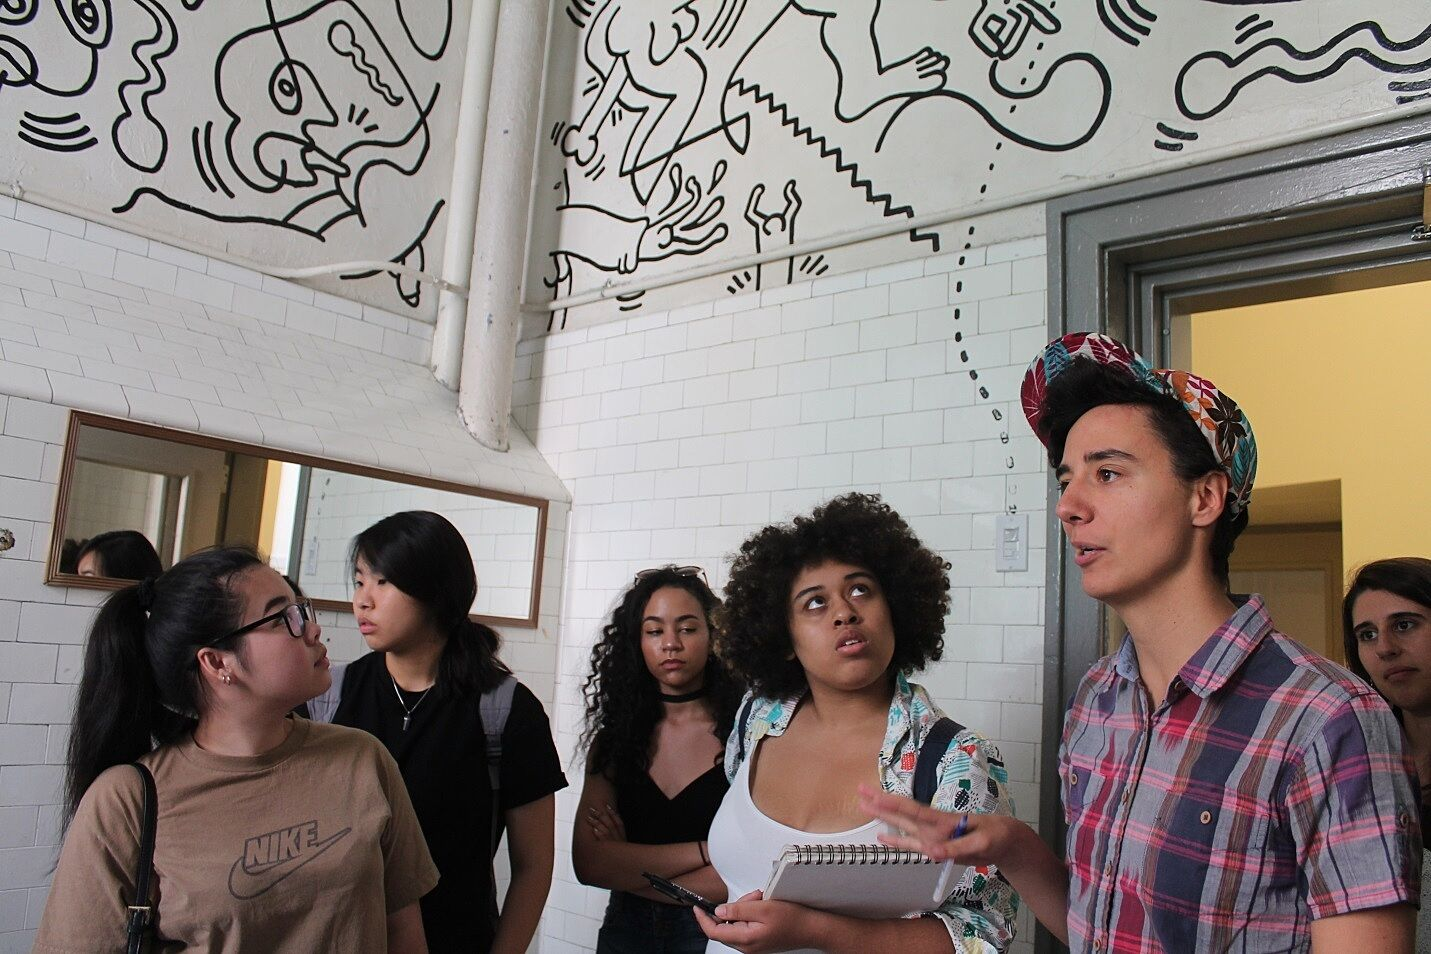 students talking in a room with a mural in it